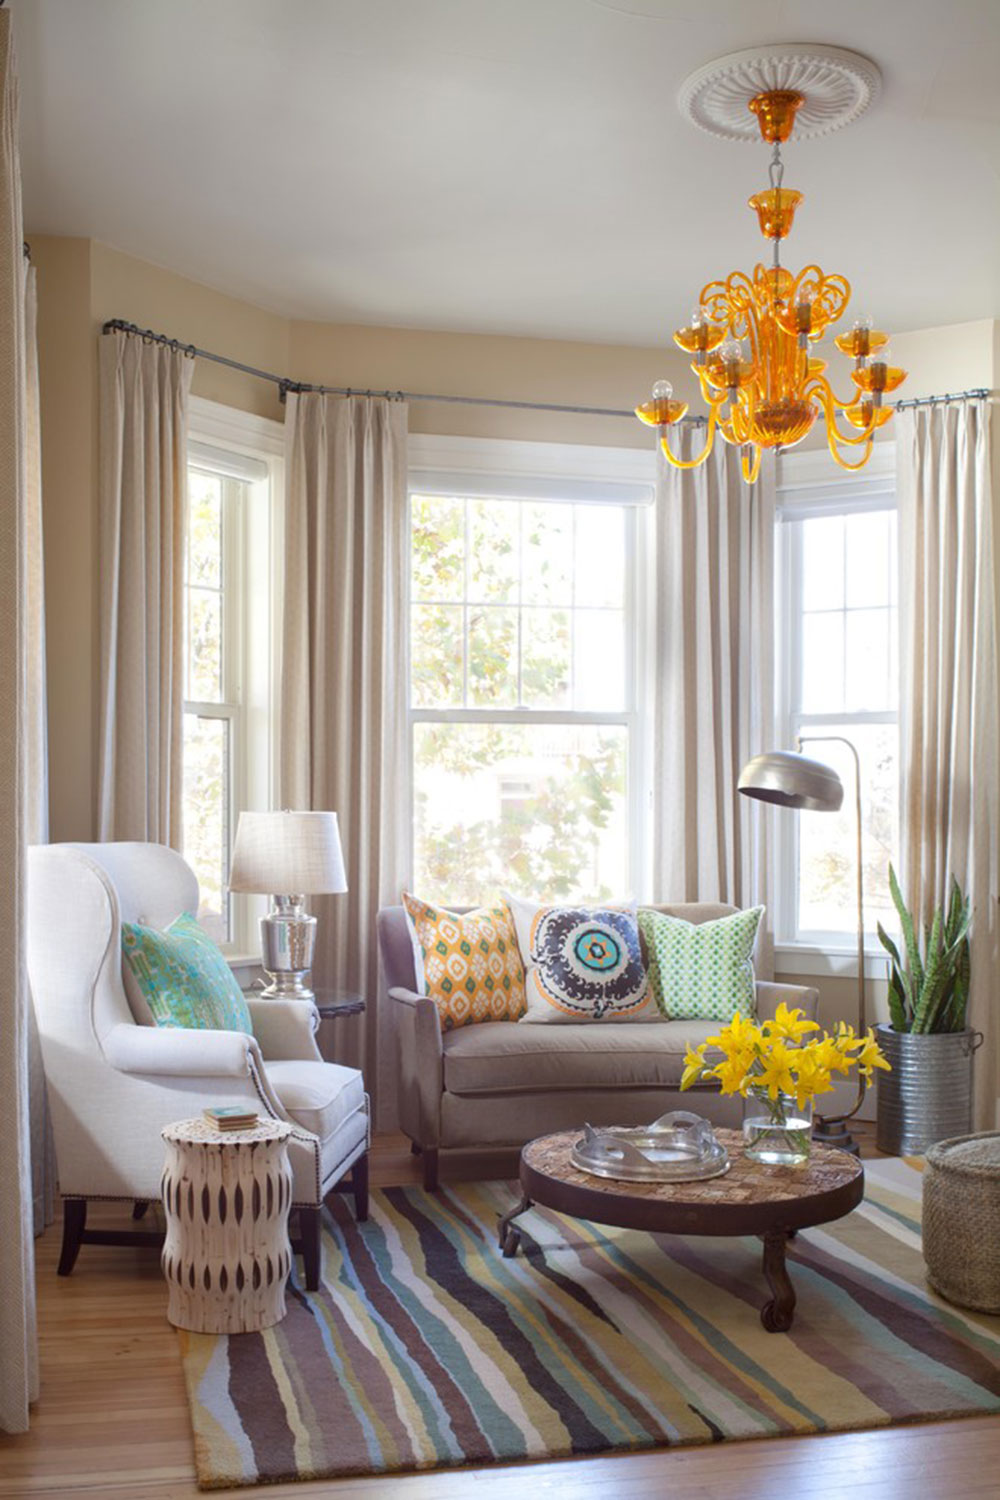 Homey-Feelings-With-These-Bay-Window-Decor-10 bay window decor to try out in your home